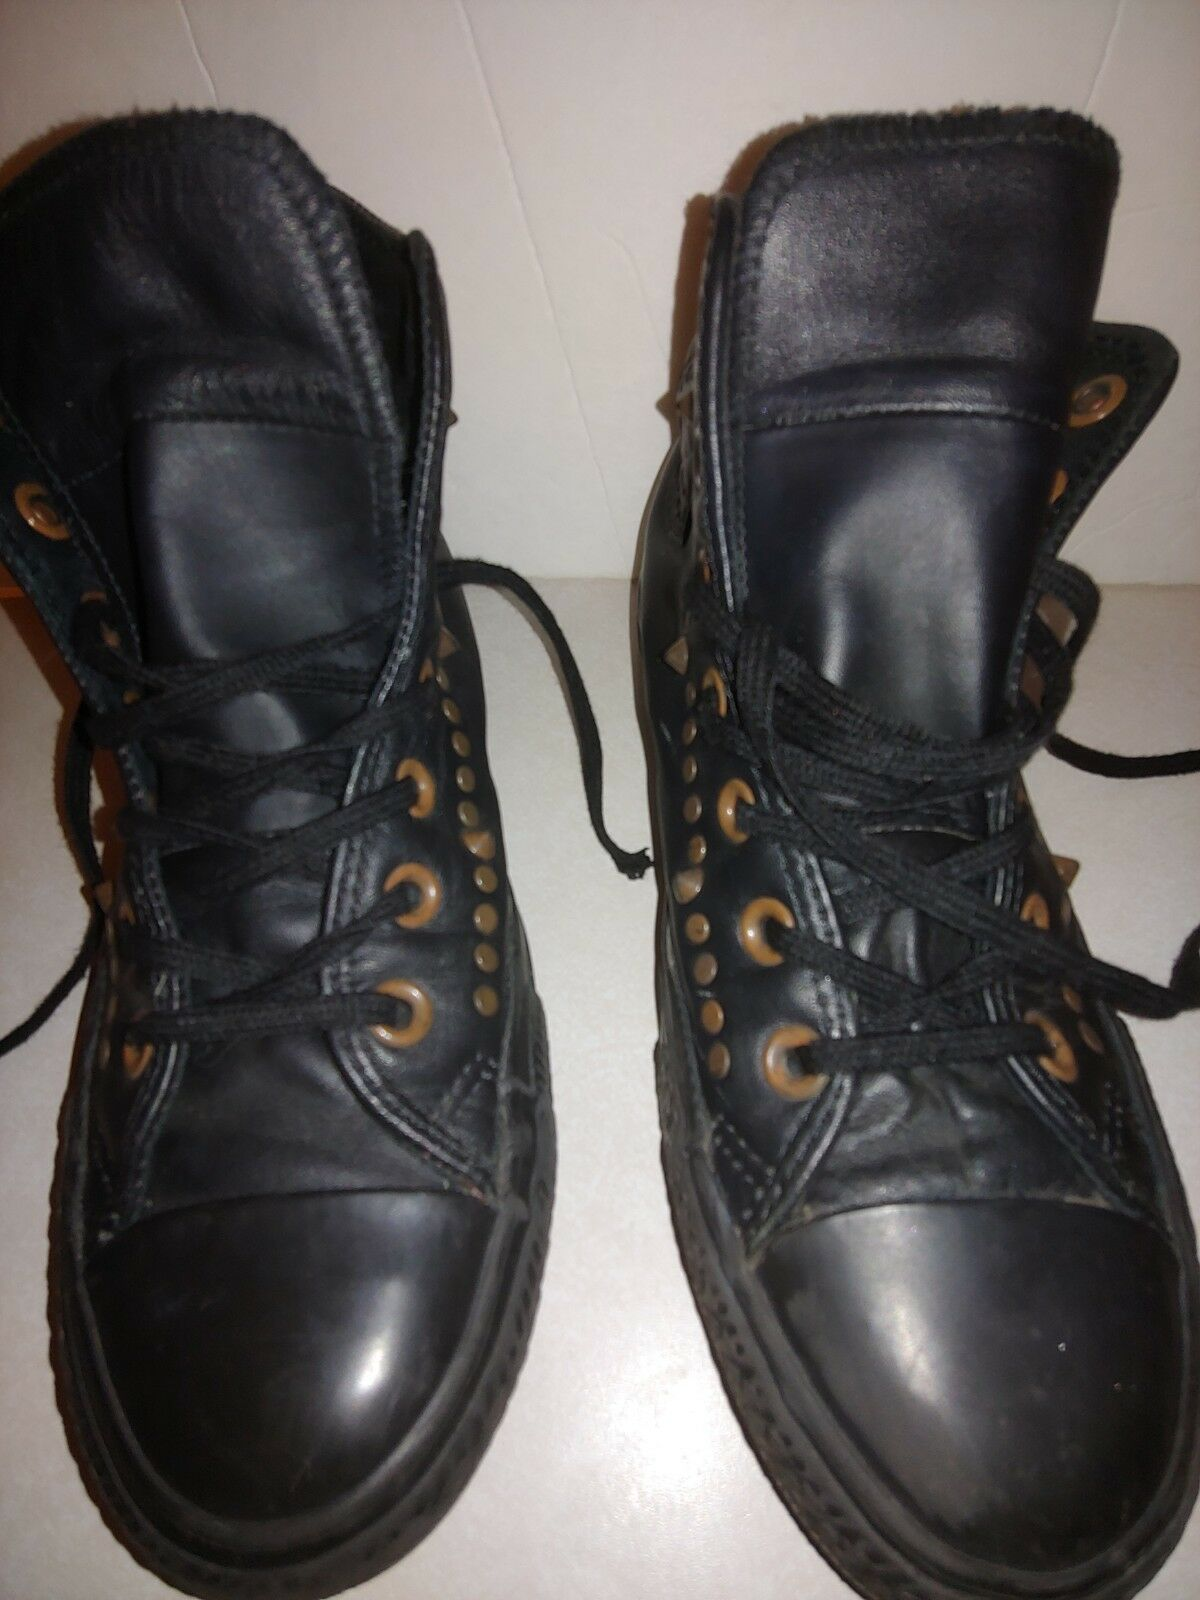 Leather stud high top comverse Size M5 W7